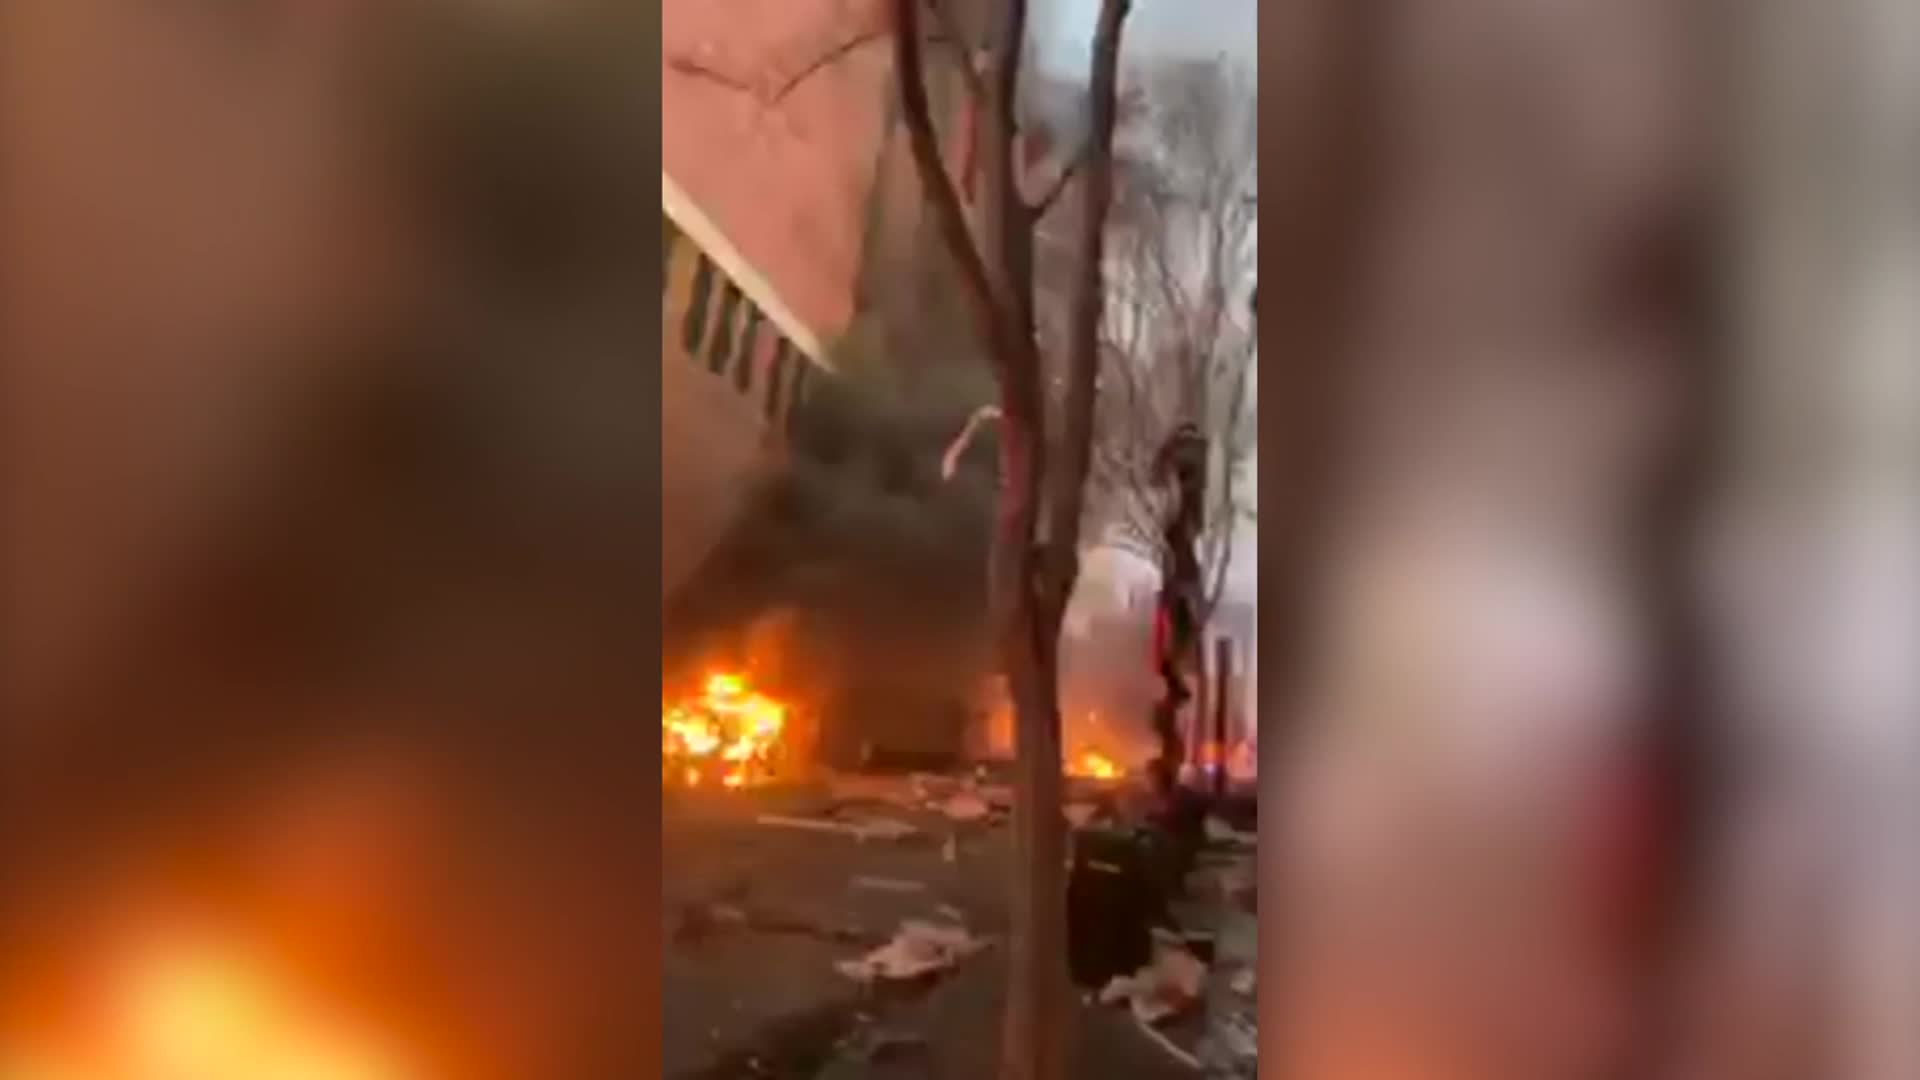 'This vehicle will explode in 15 minutes.' Witnesses describe surviving the Nashville explosion